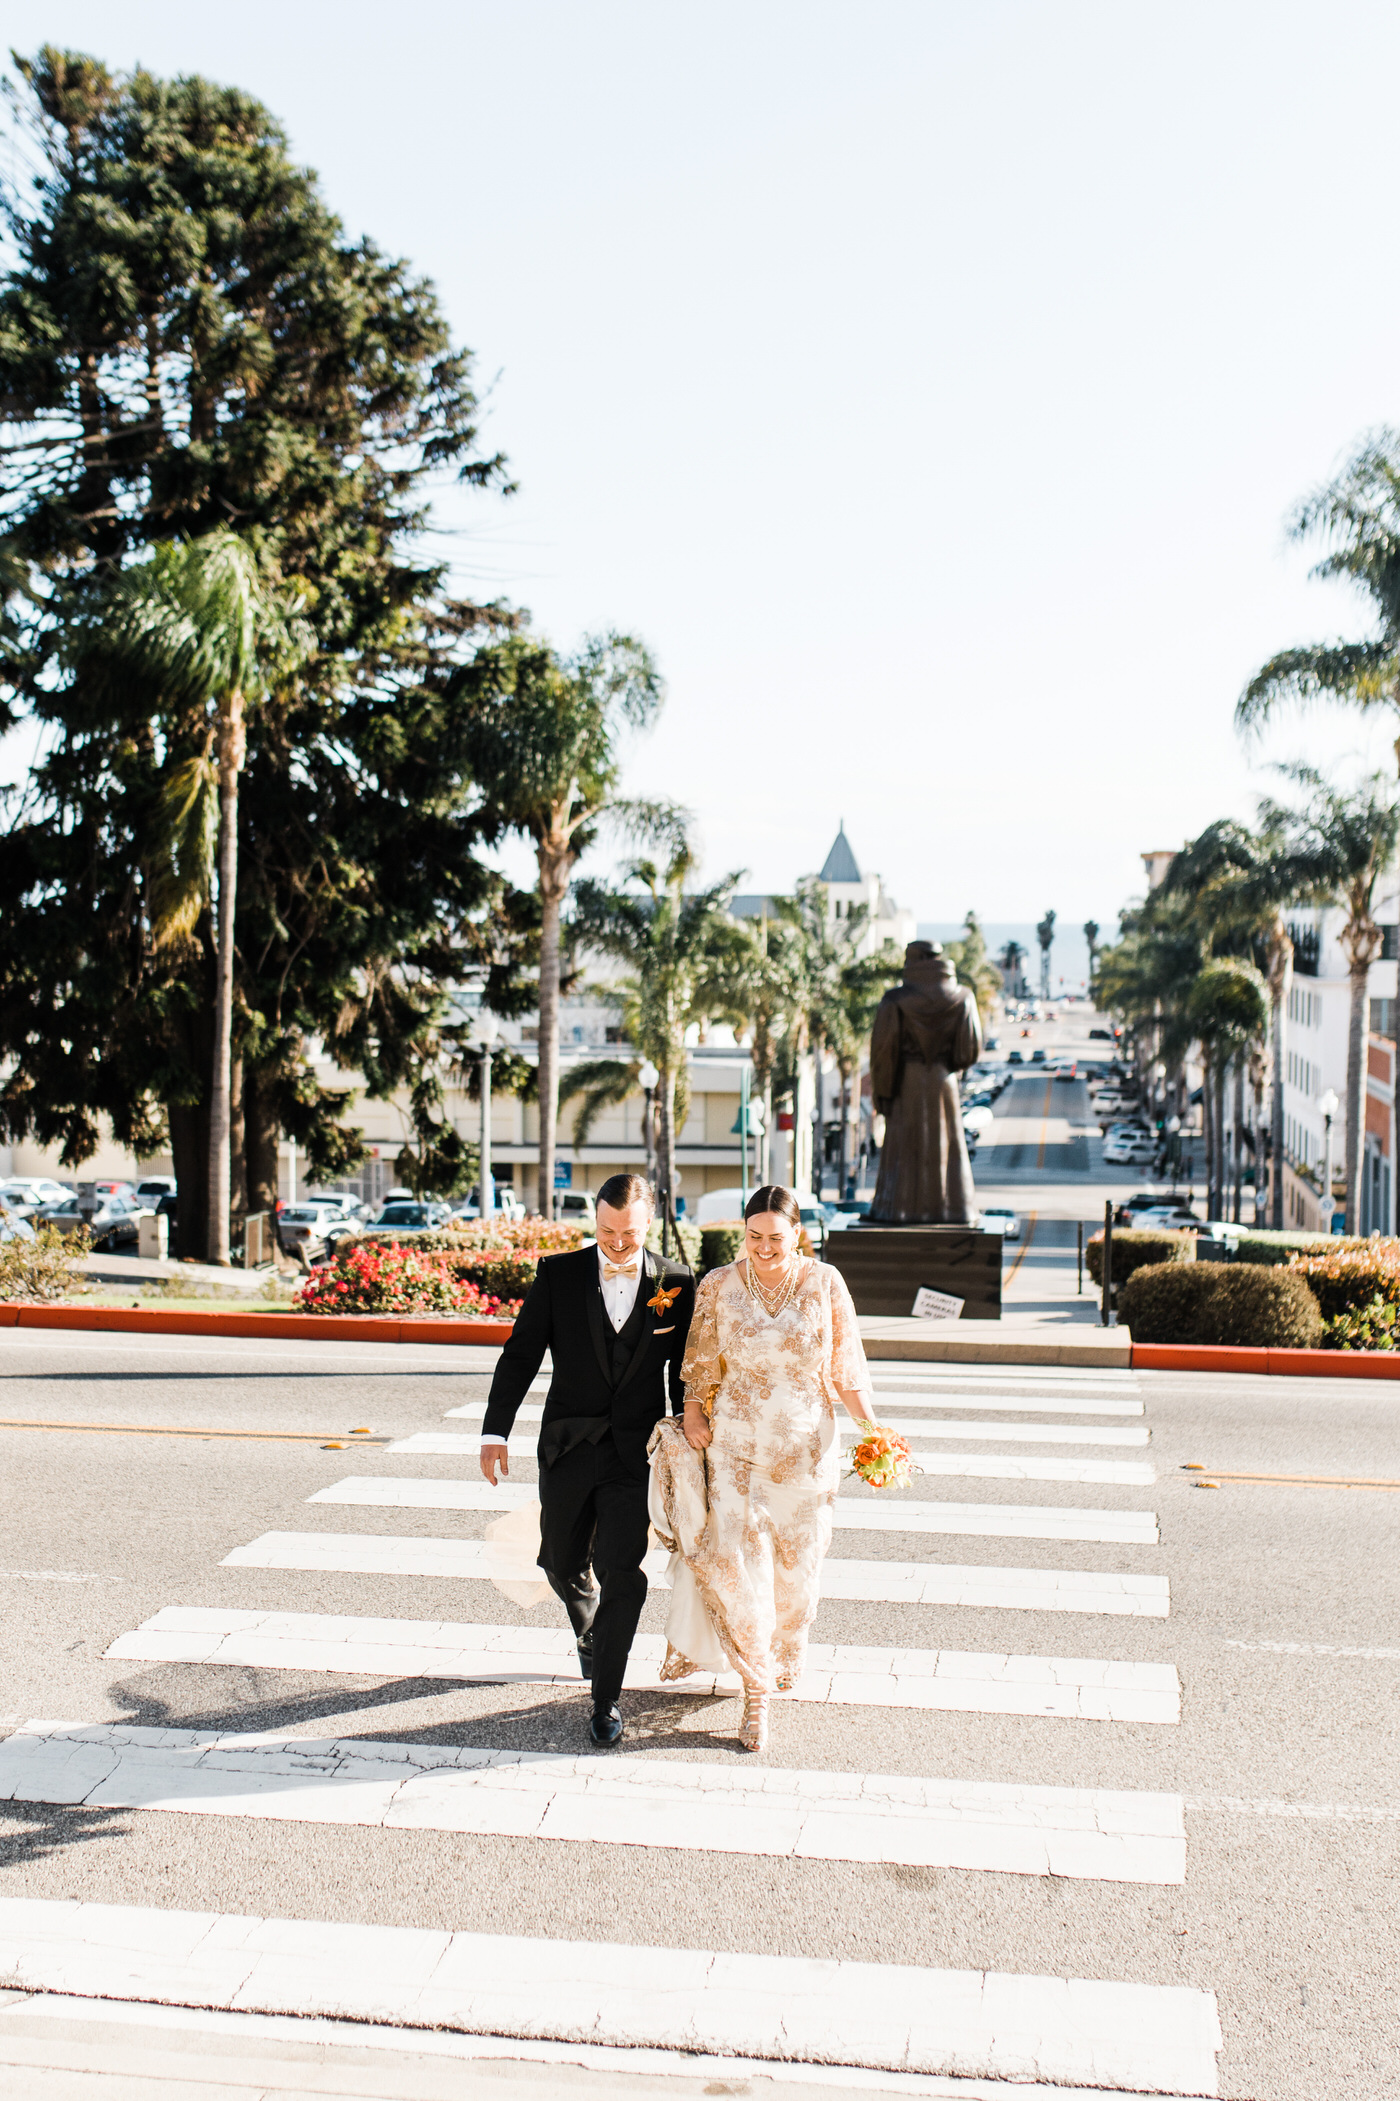 Martina&Niko-Wedding-Mission-San-Buenaventura-Clarisse-Rae-Southern-California-Wedding-Photographer_592